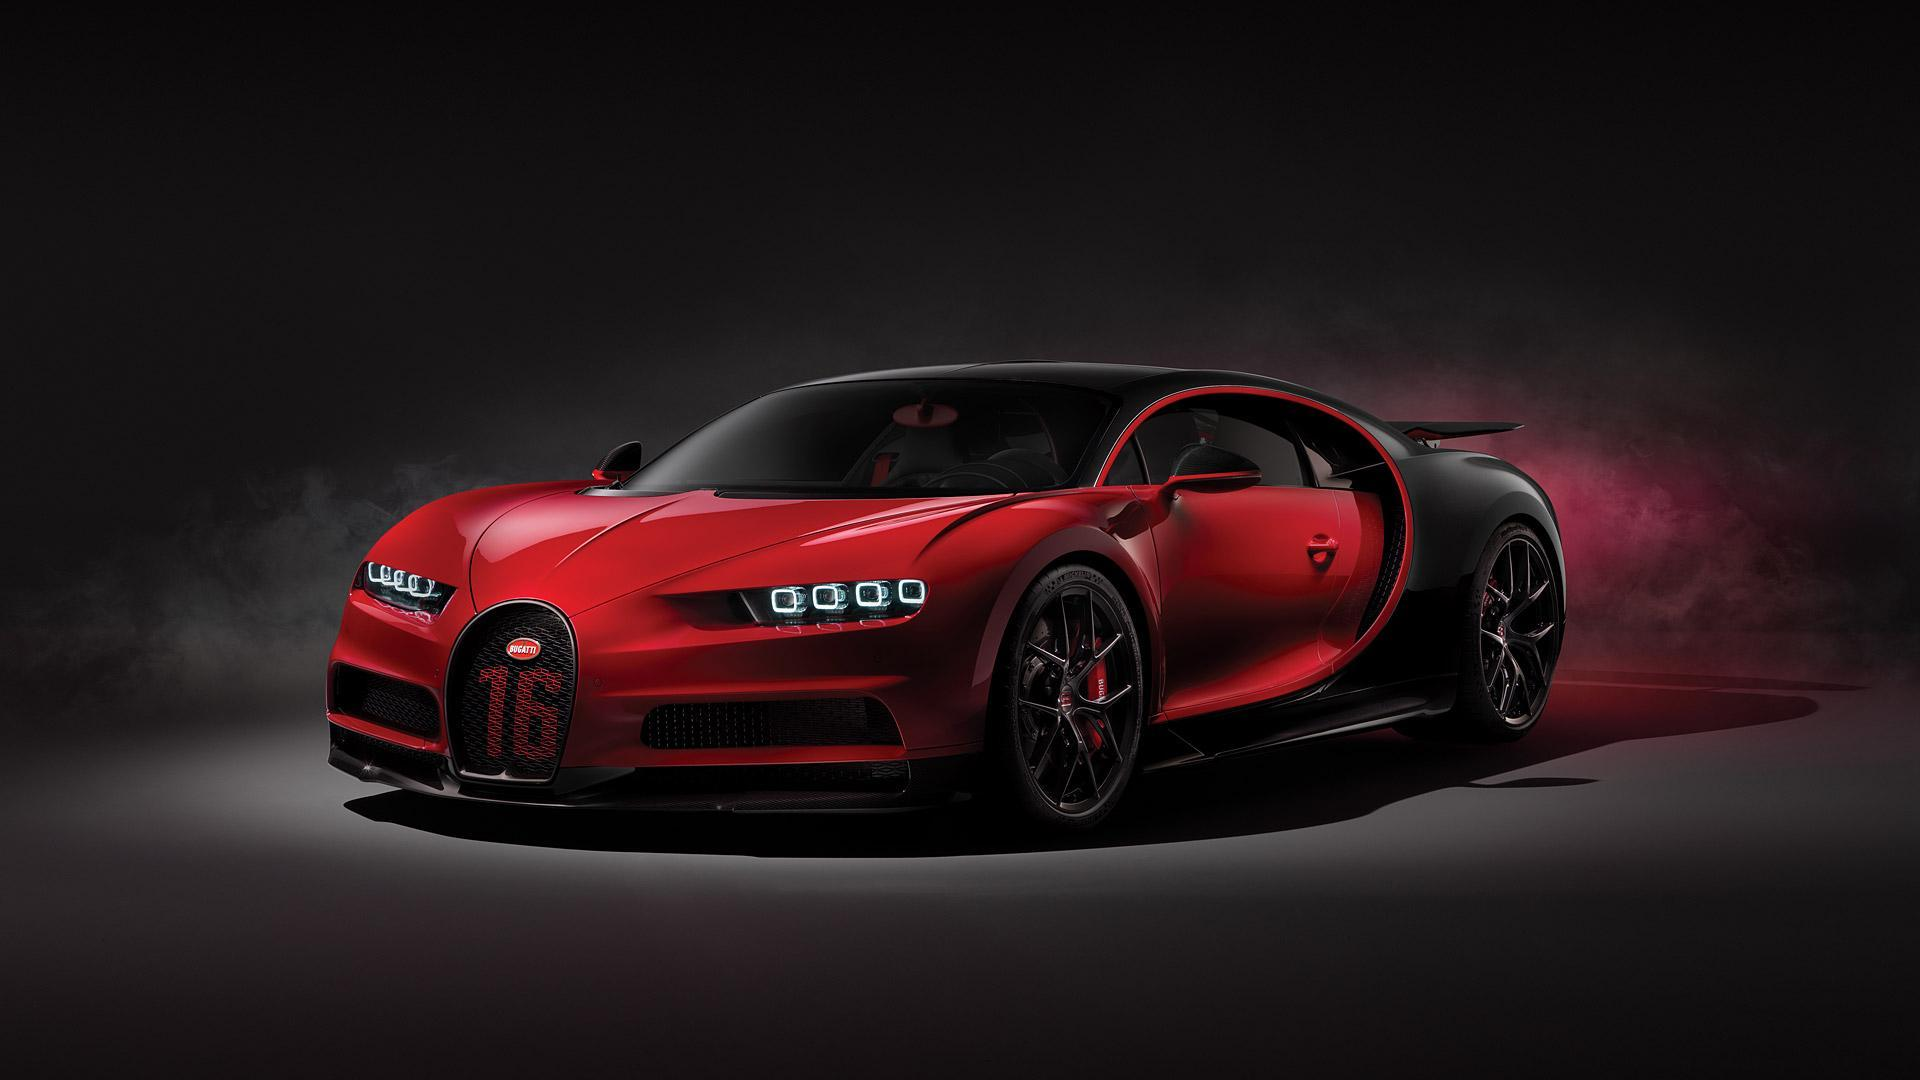 Bugatti Wallpaper Car Wallpapers Hd For Android Apk Download